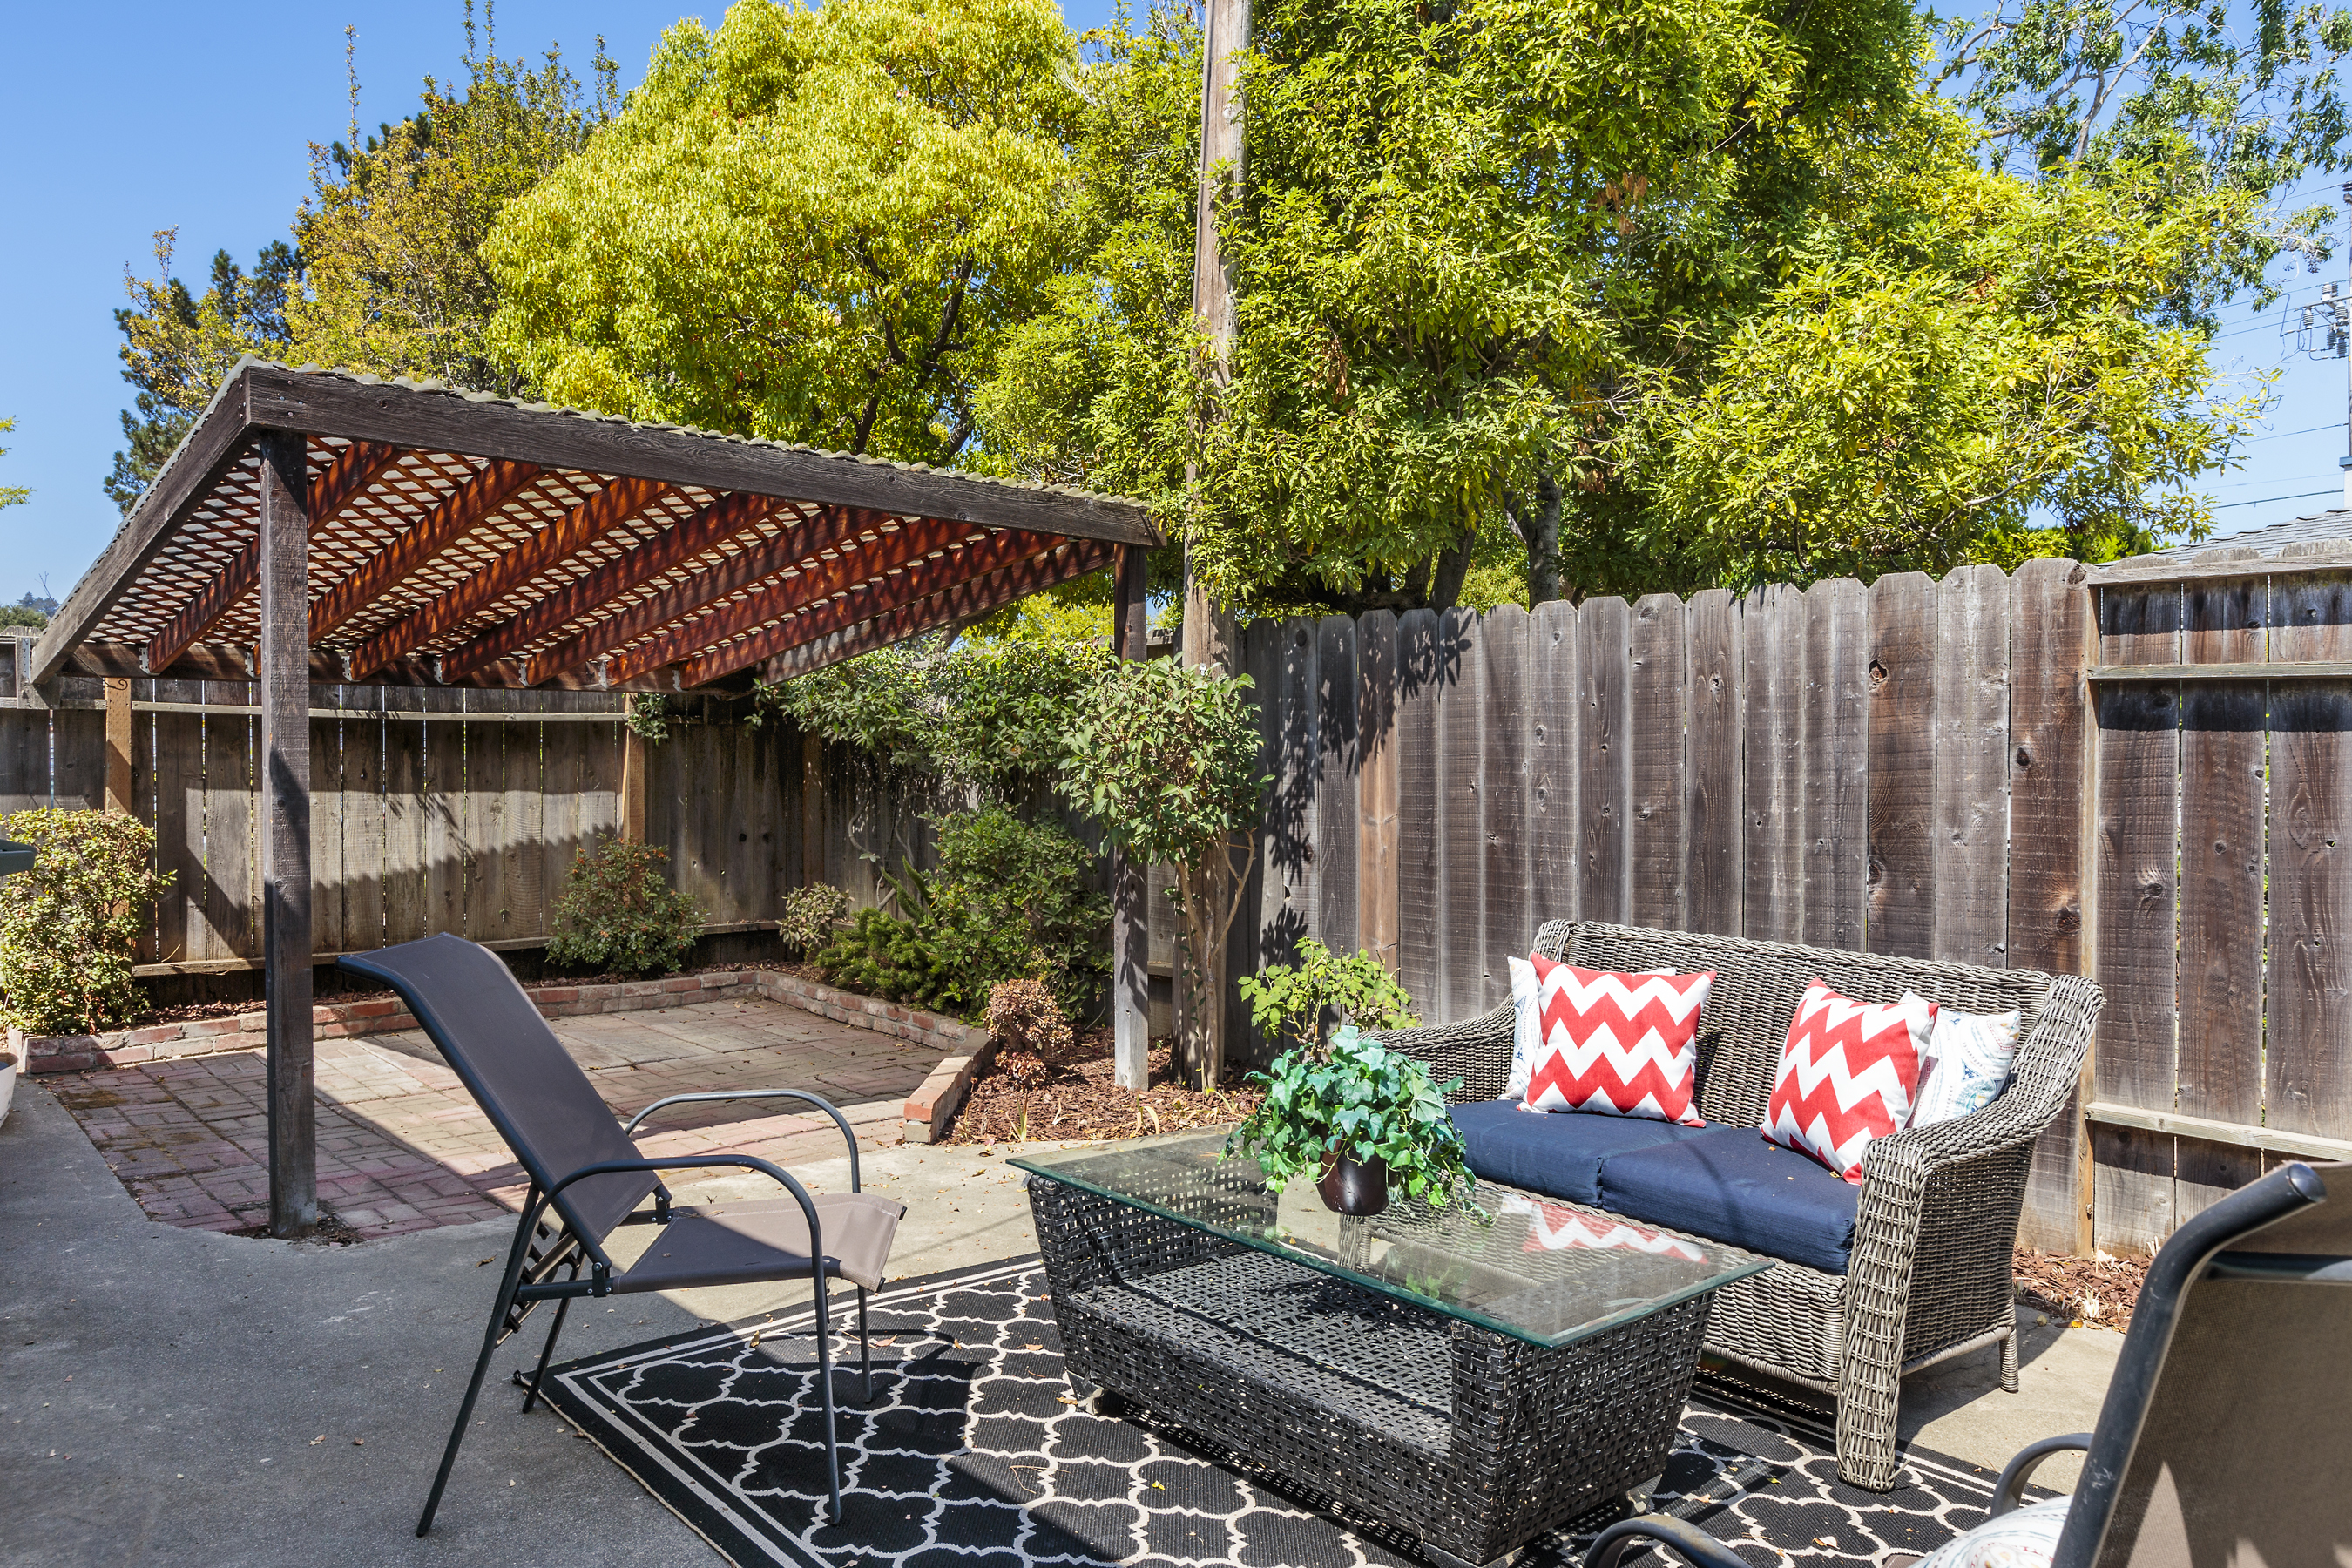 23-3115AlamedaDeLasPulgas-patio-high-res